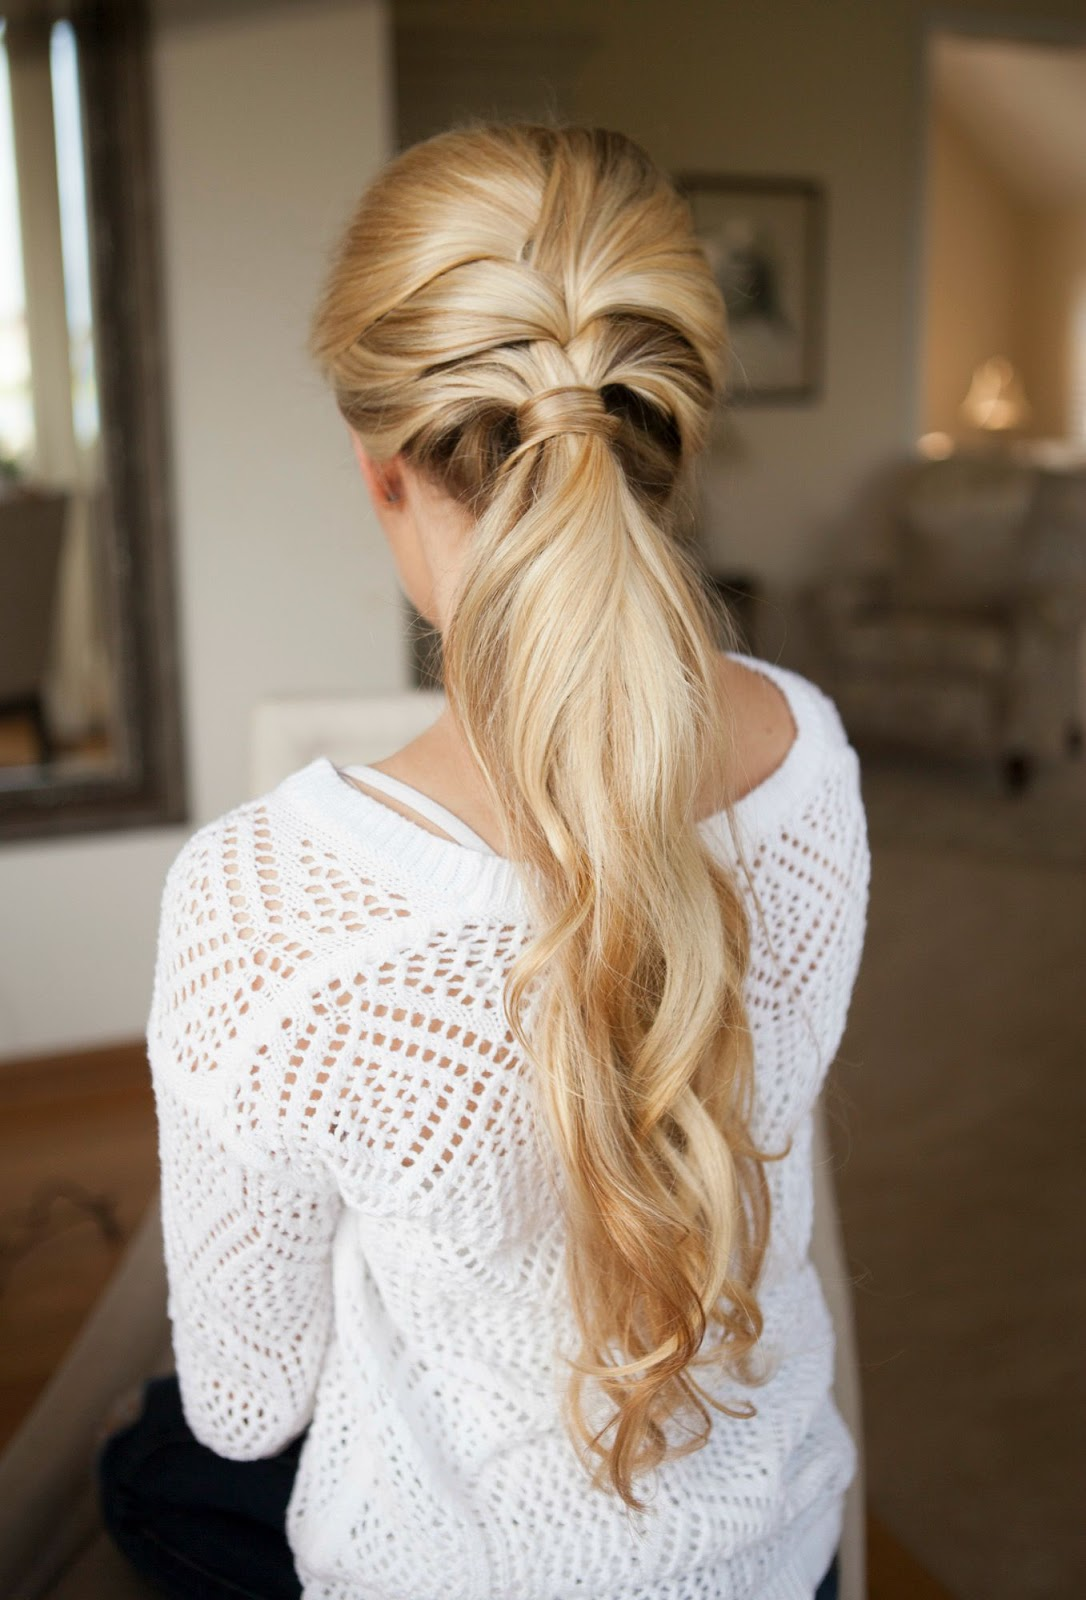 Braided low ponytail for school